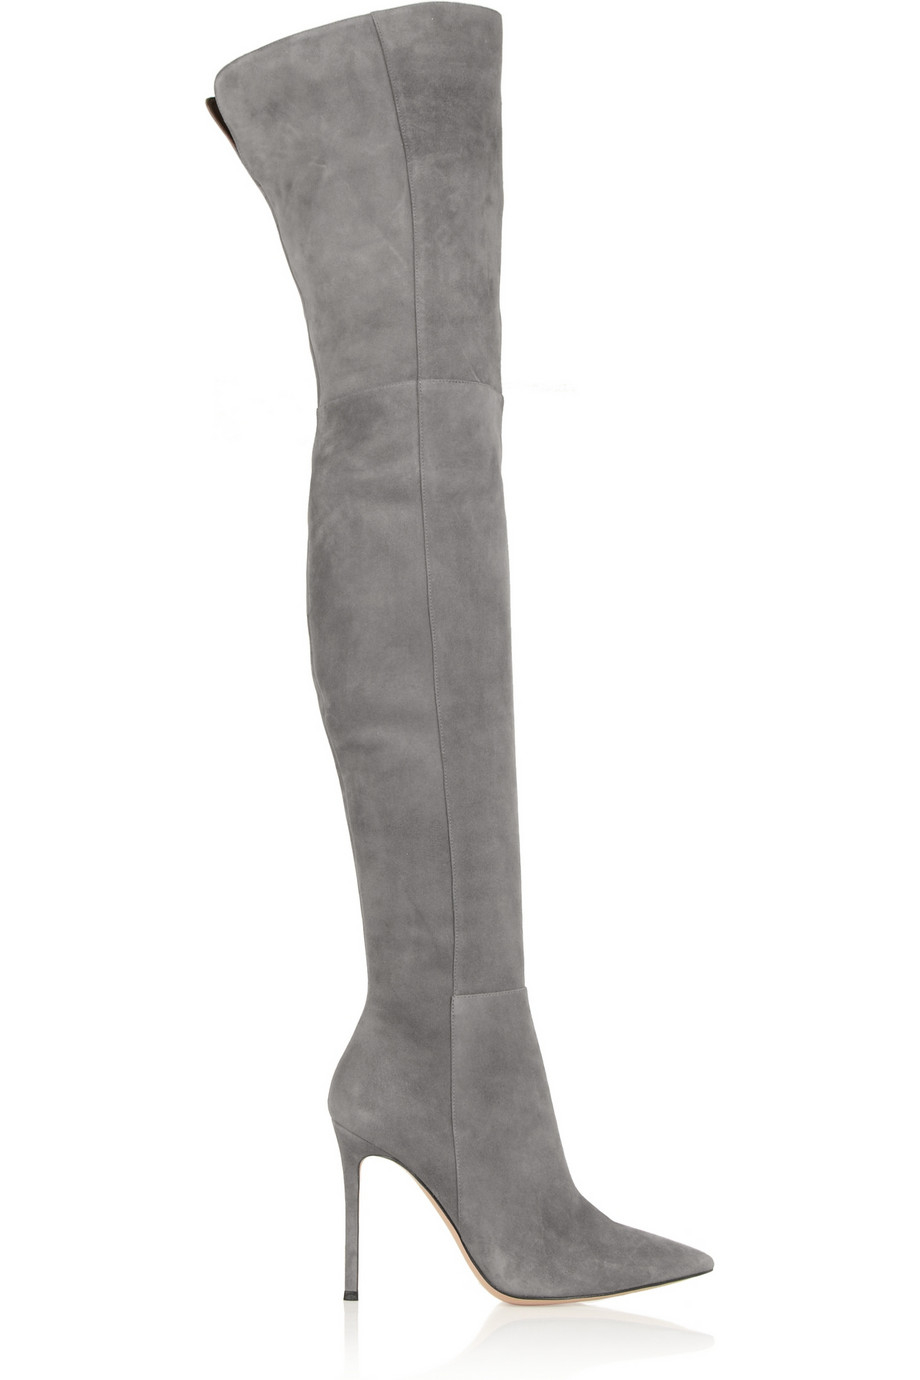 gianvito rossi suede overtheknee boots in gray lyst. Black Bedroom Furniture Sets. Home Design Ideas